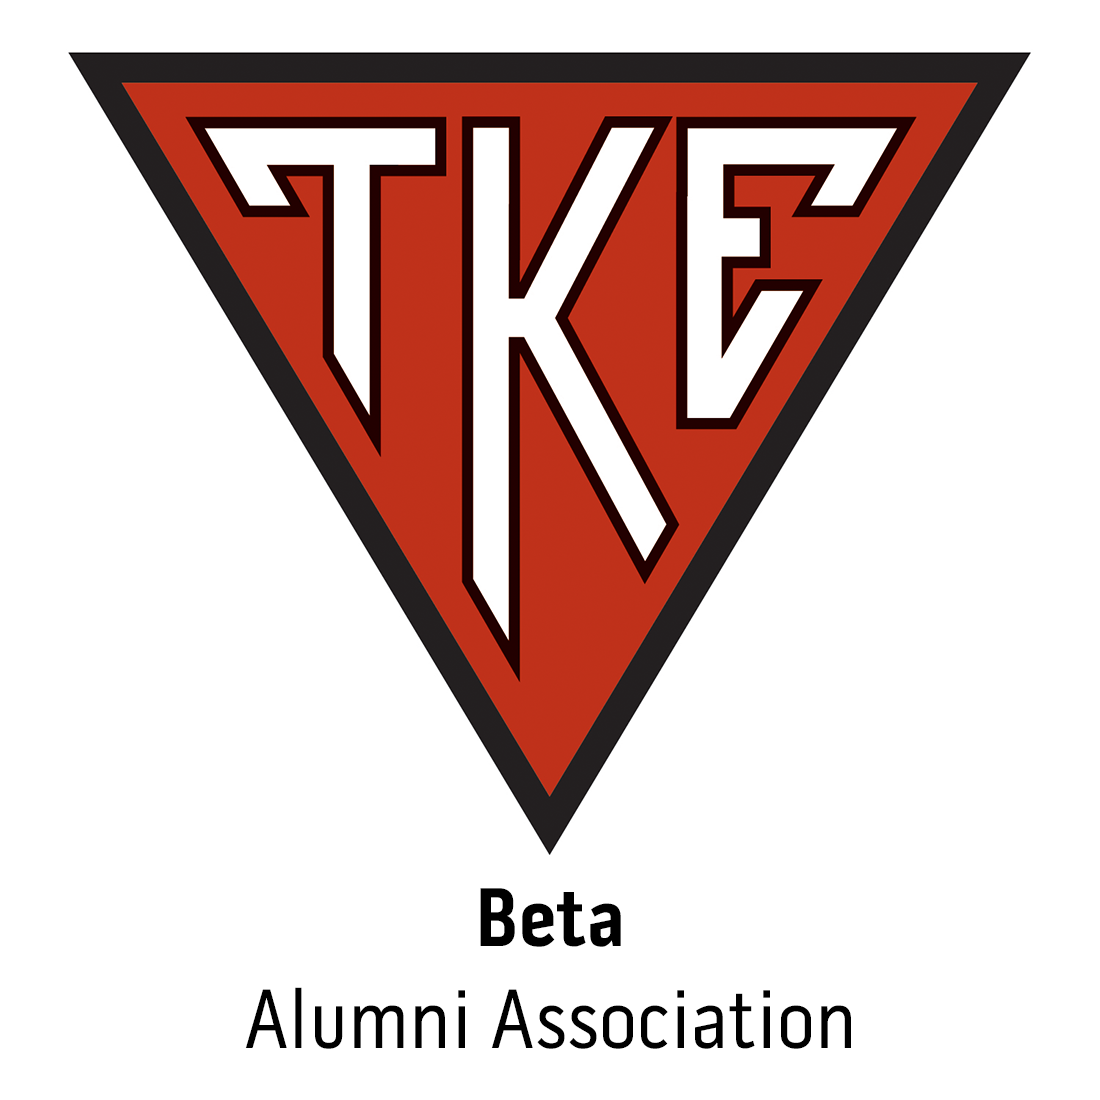 Beta Alumni Association at Millikin University